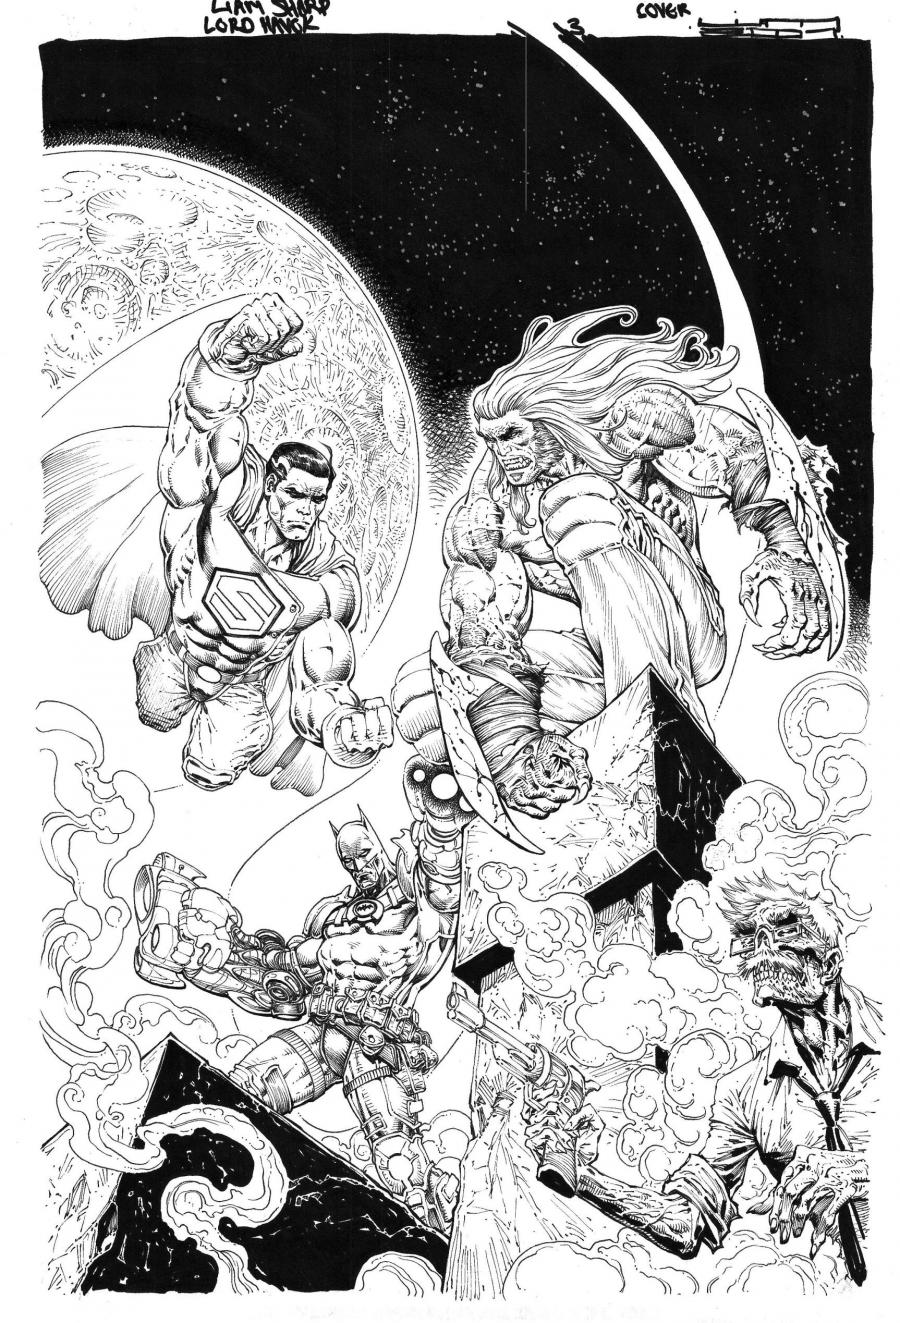 Planche originale de bande dessinée, galerie Napoléon  : BATMAN - Couverture originale BATMAN et SUPERMAN issue de Lord Havok and the Extremists - Tome I, Part Three : The Beast Within par Liam Sharp -